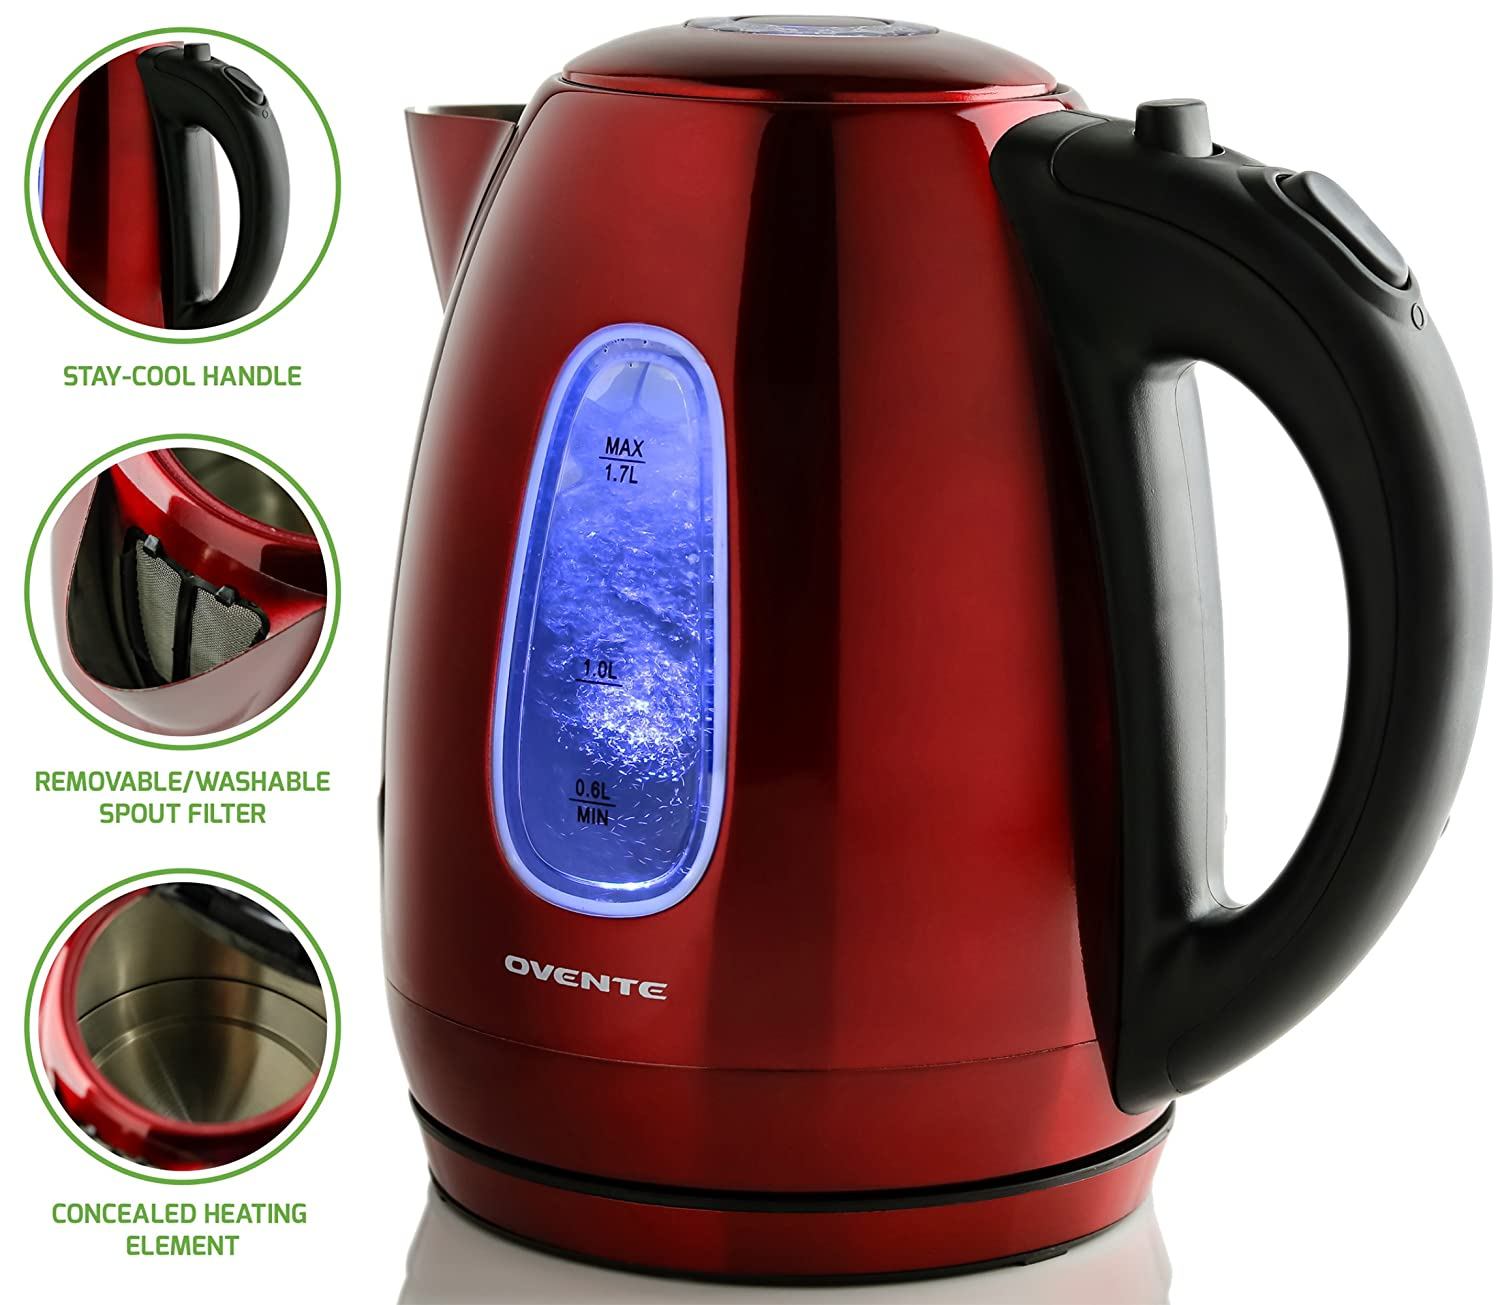 Ovente 1.7 Liter BPA-Free Stainless Steel Cordless Electric Kettle, 1100-Watts, Auto Shut-Off and Boil-Dry Protection, Matte Black Cool-Touch Handle, Macaron Cream (KS96BG) DAFI by Ruby Compass